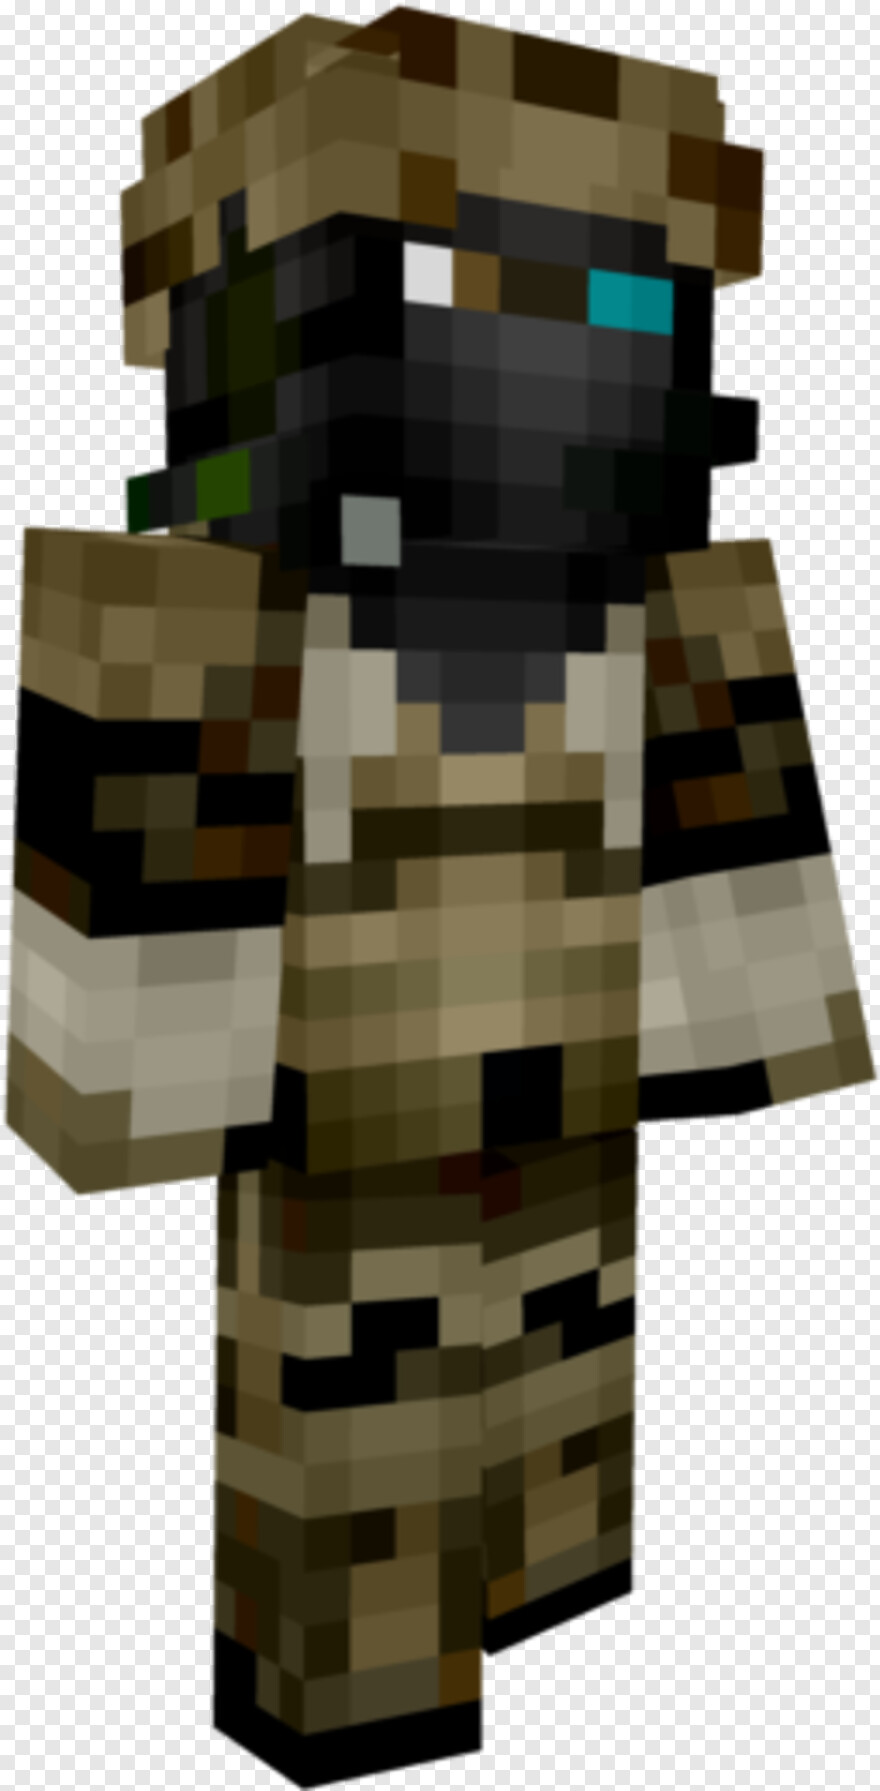 Future Soldier - Ghost Recon Future Soldier Minecraft Skin, HD Png